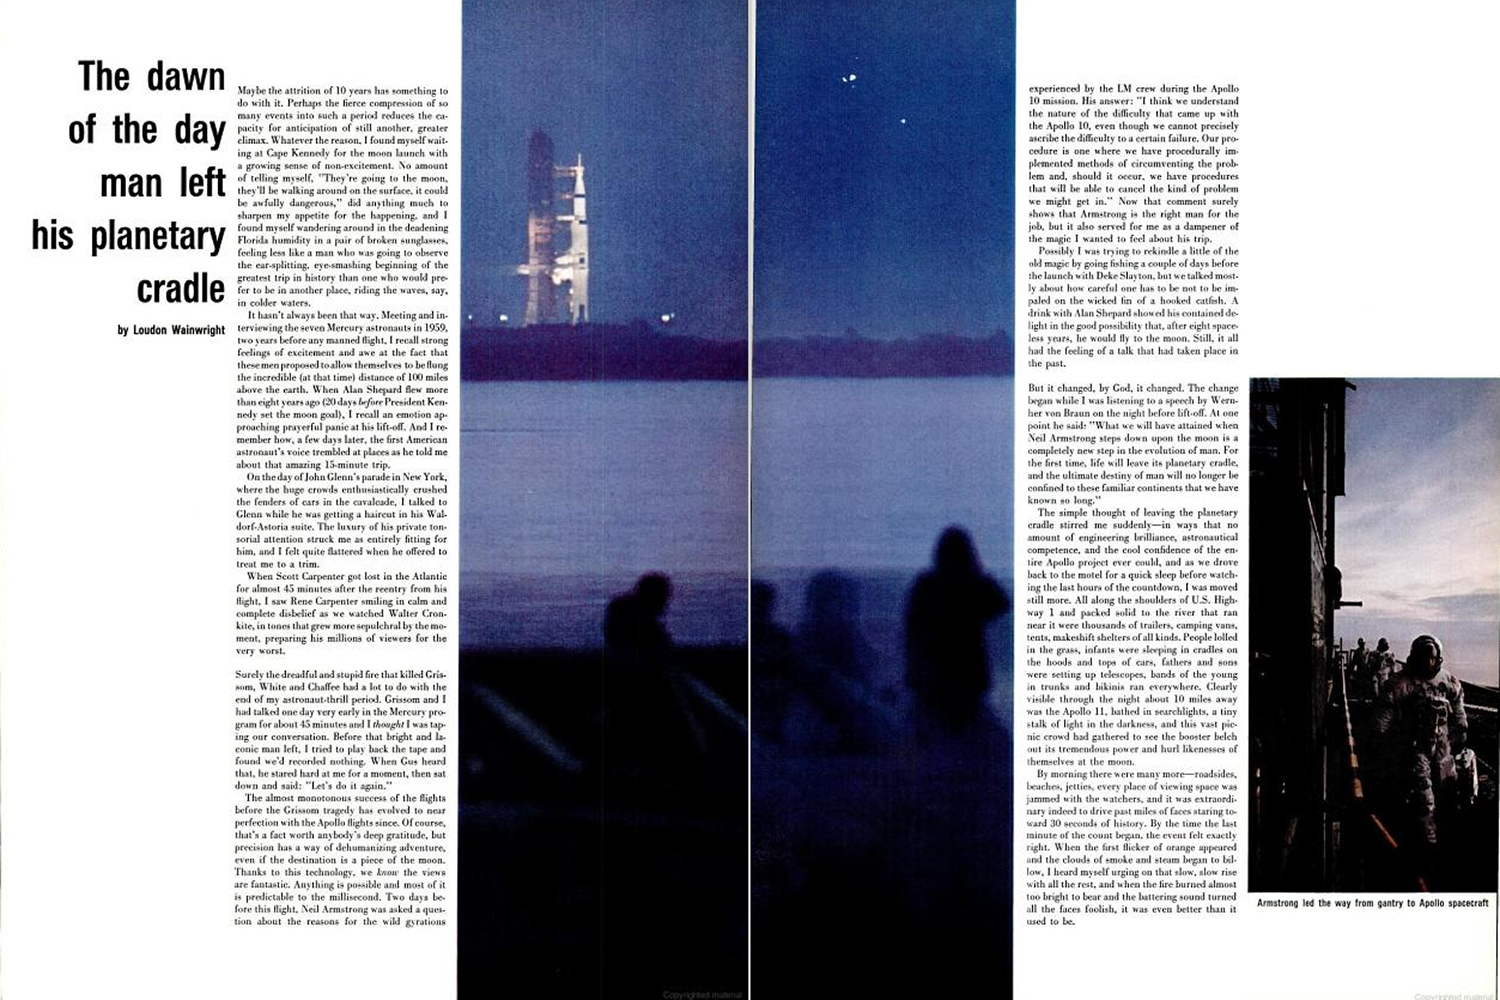 "<b>Life magazine Special Edition, August 11, 1969.</b> ""The dawn of the day man left his planetary cradle. Right: Armstrong led the way from gantry to spacecraft ..."""